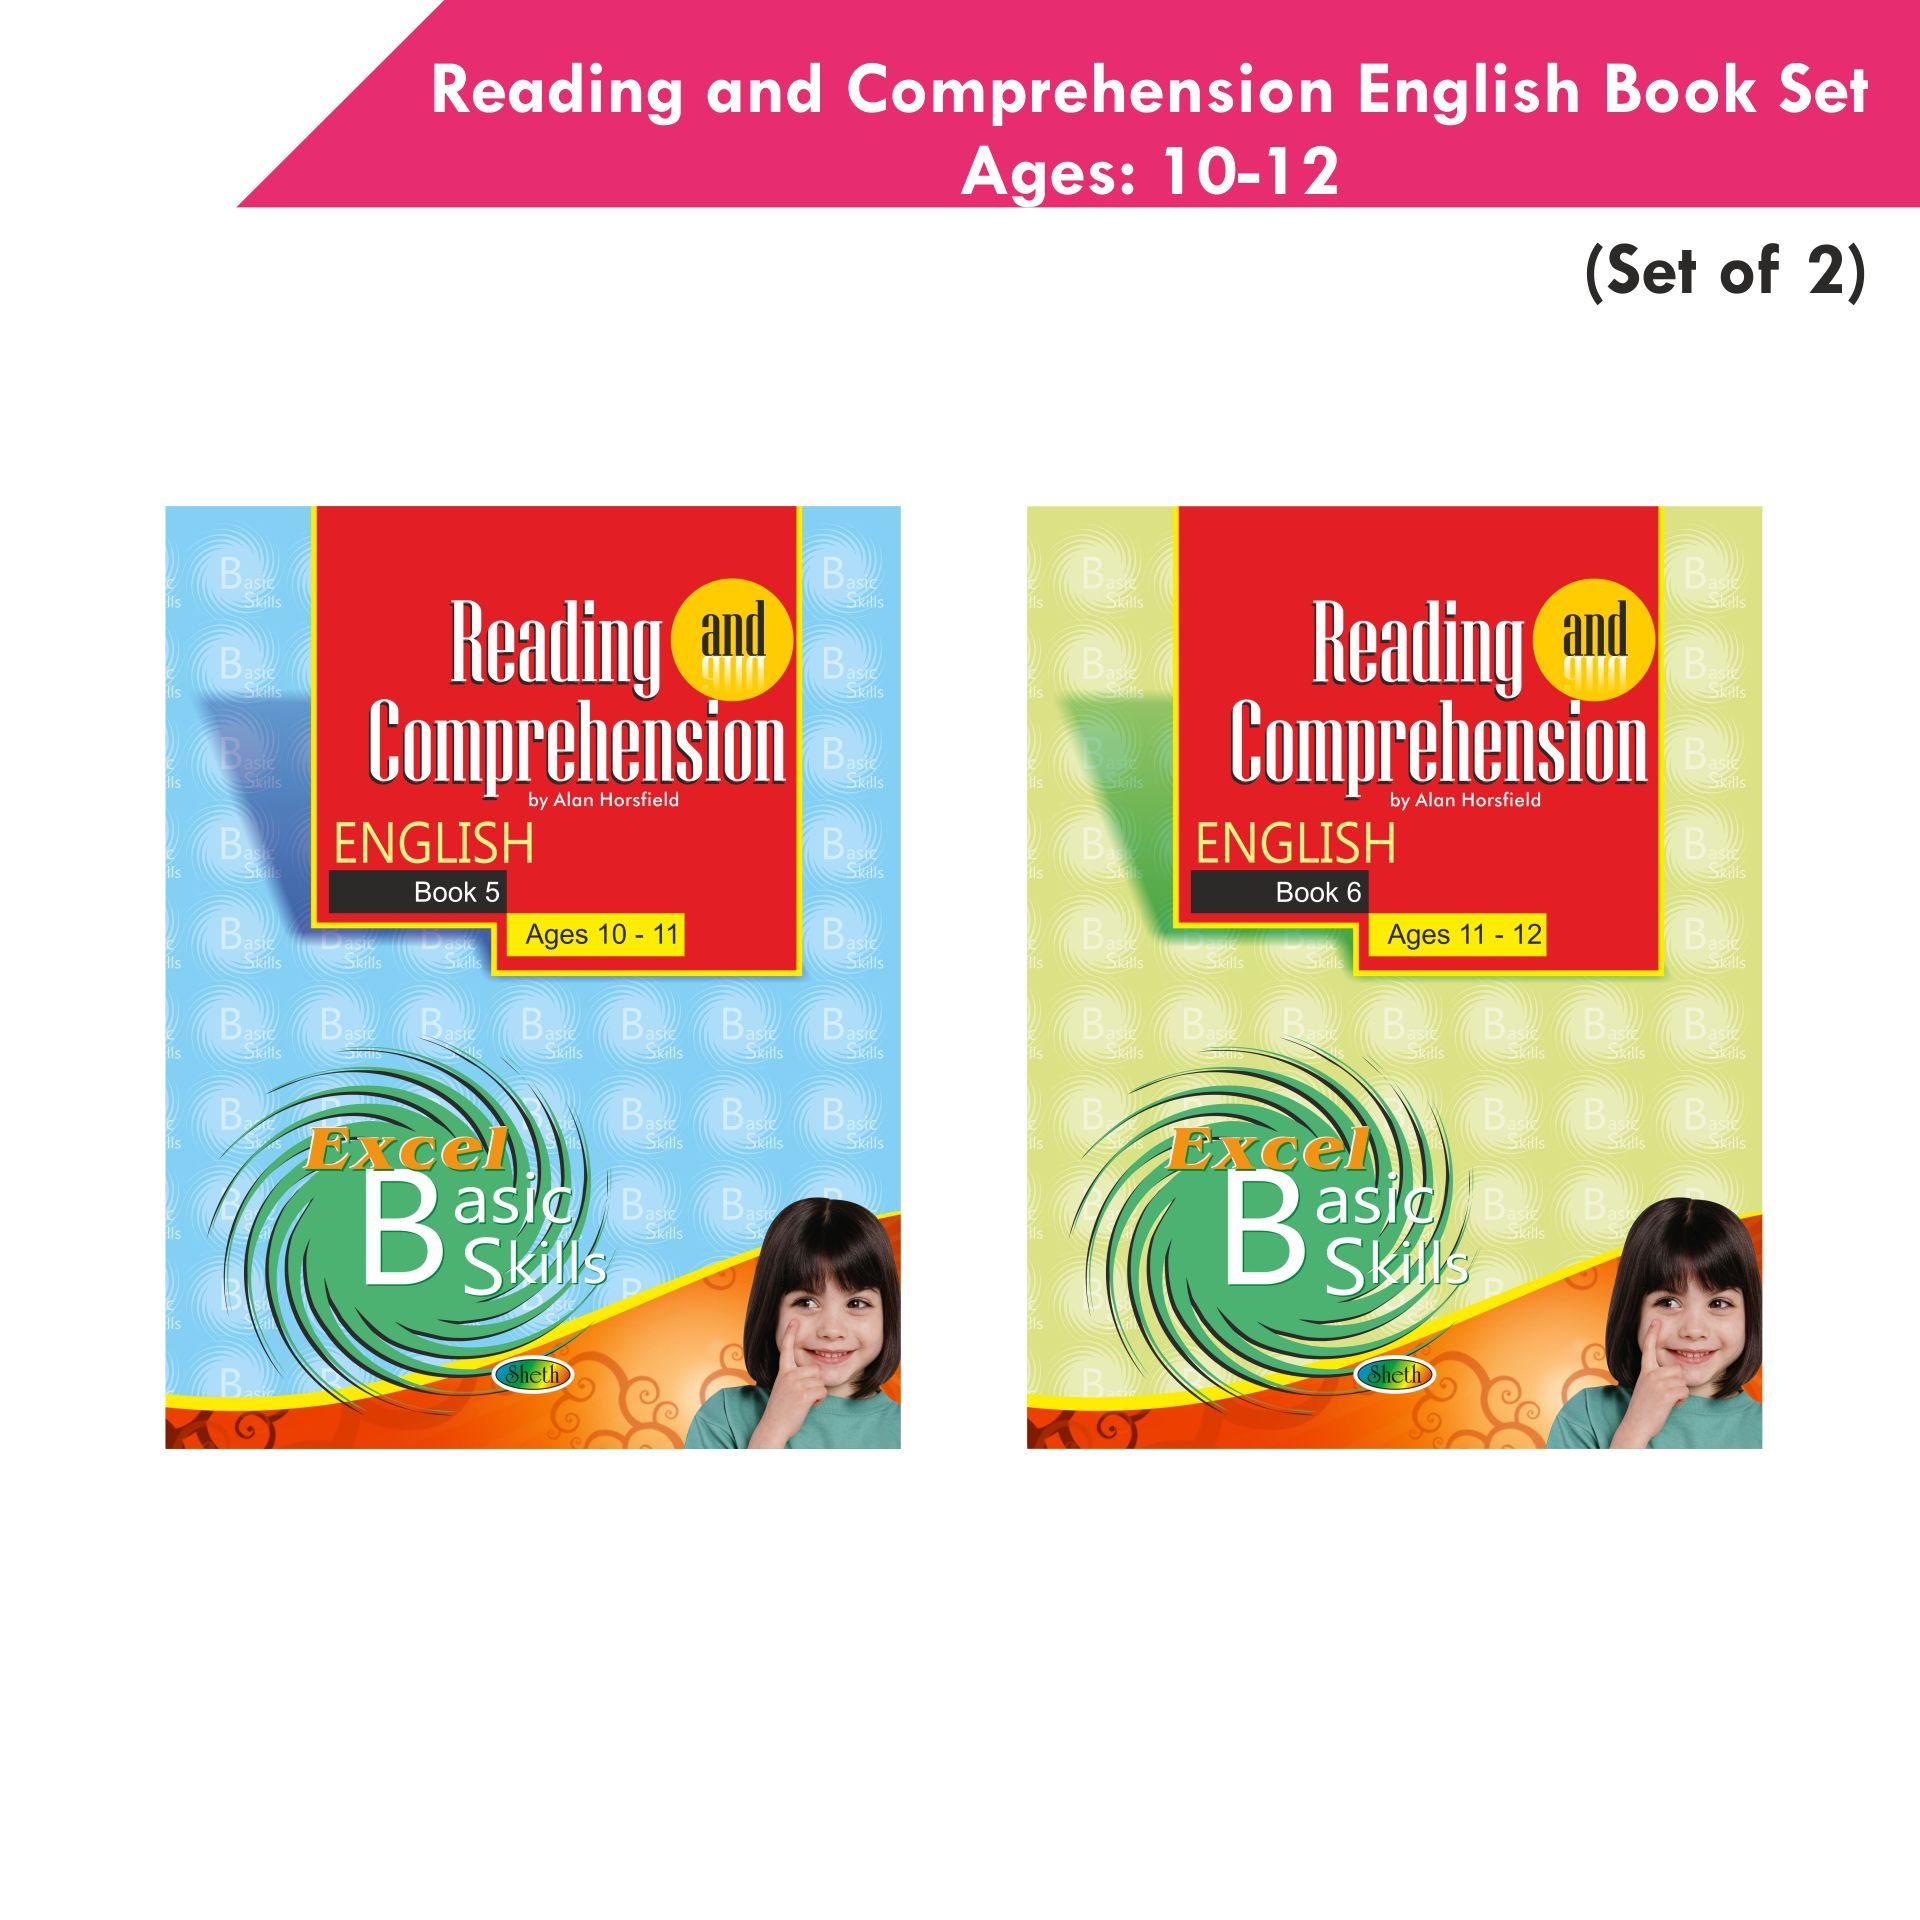 Excel Reading and Comprehension English Book Set 3 Set of 2 1